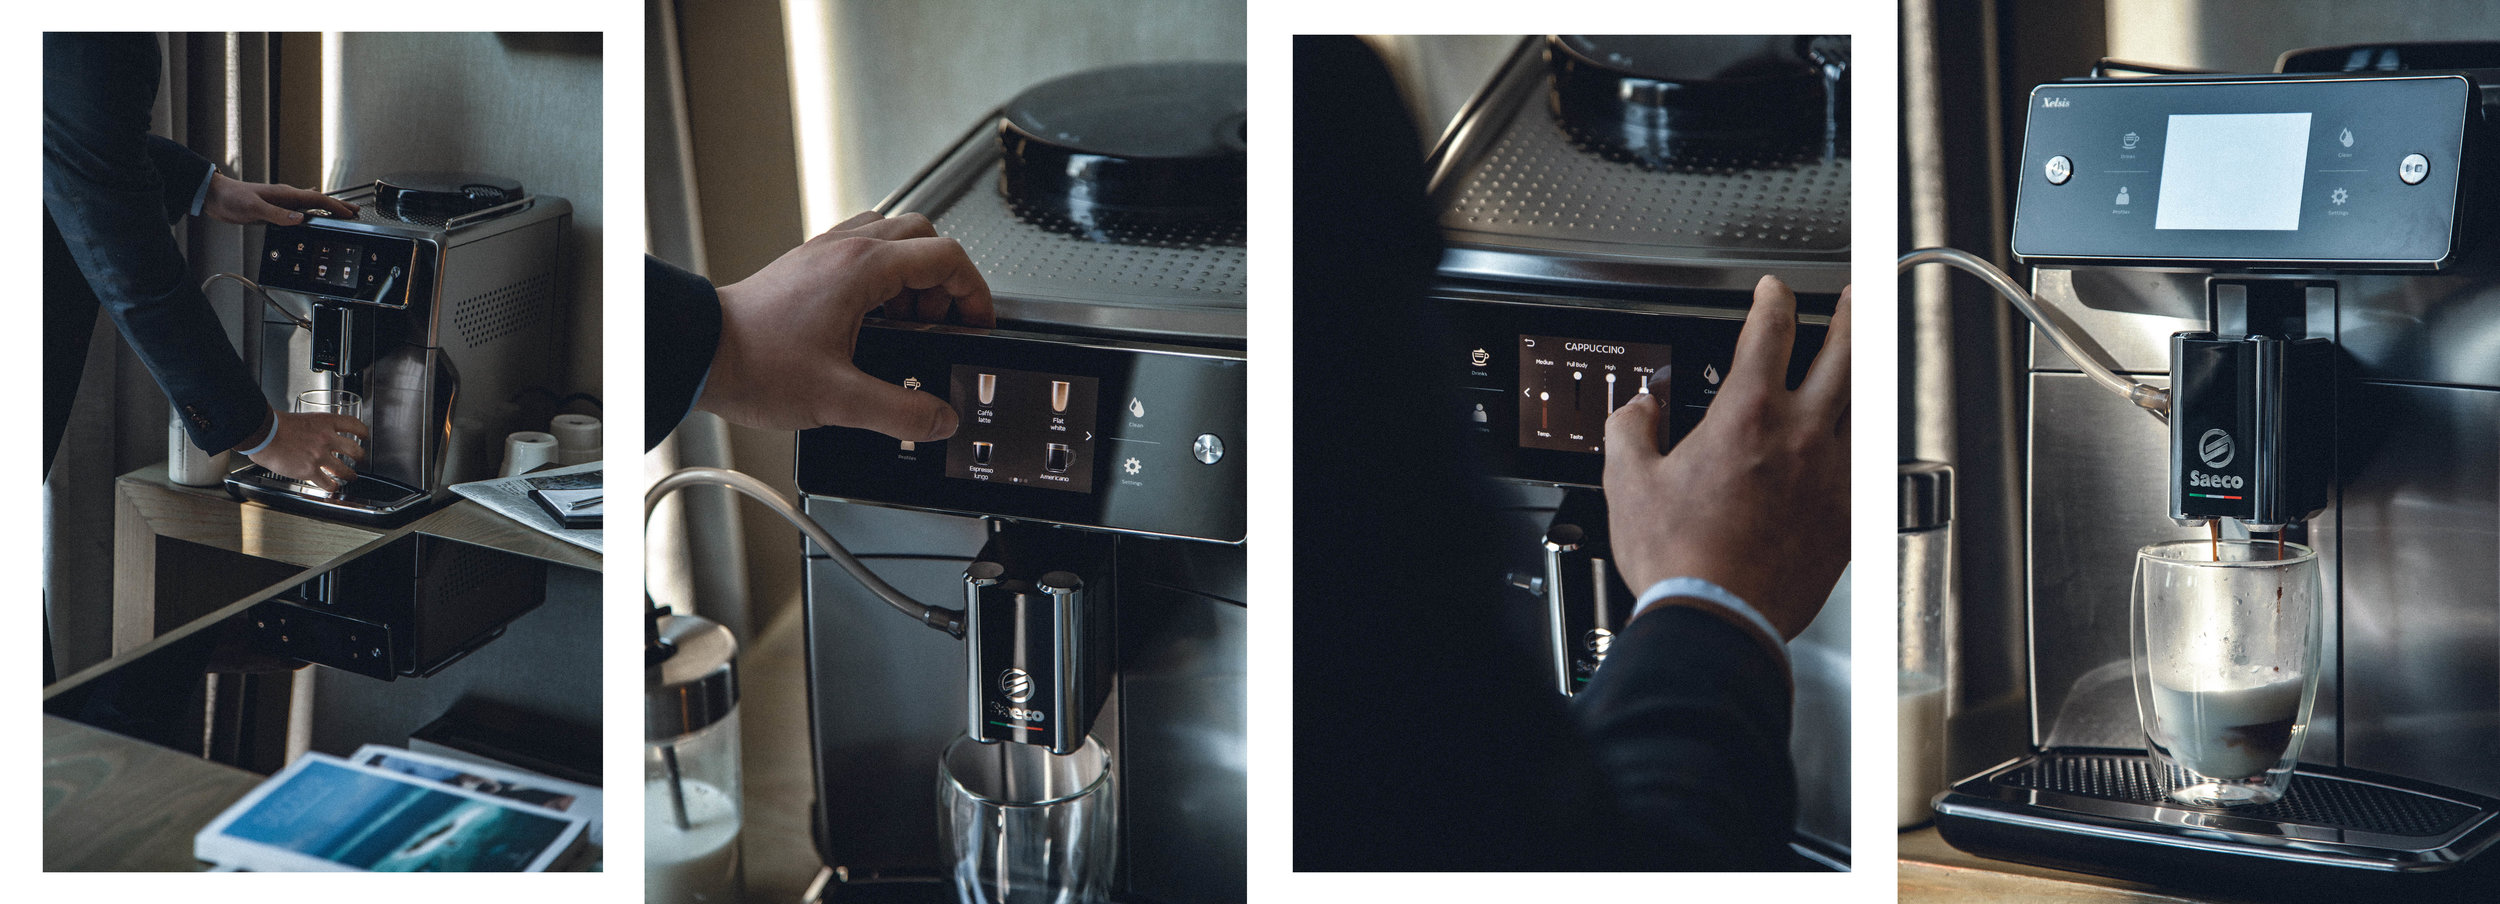 Copy of How-to-make-the-perfect-cup-of-coffe-at-home.jpg